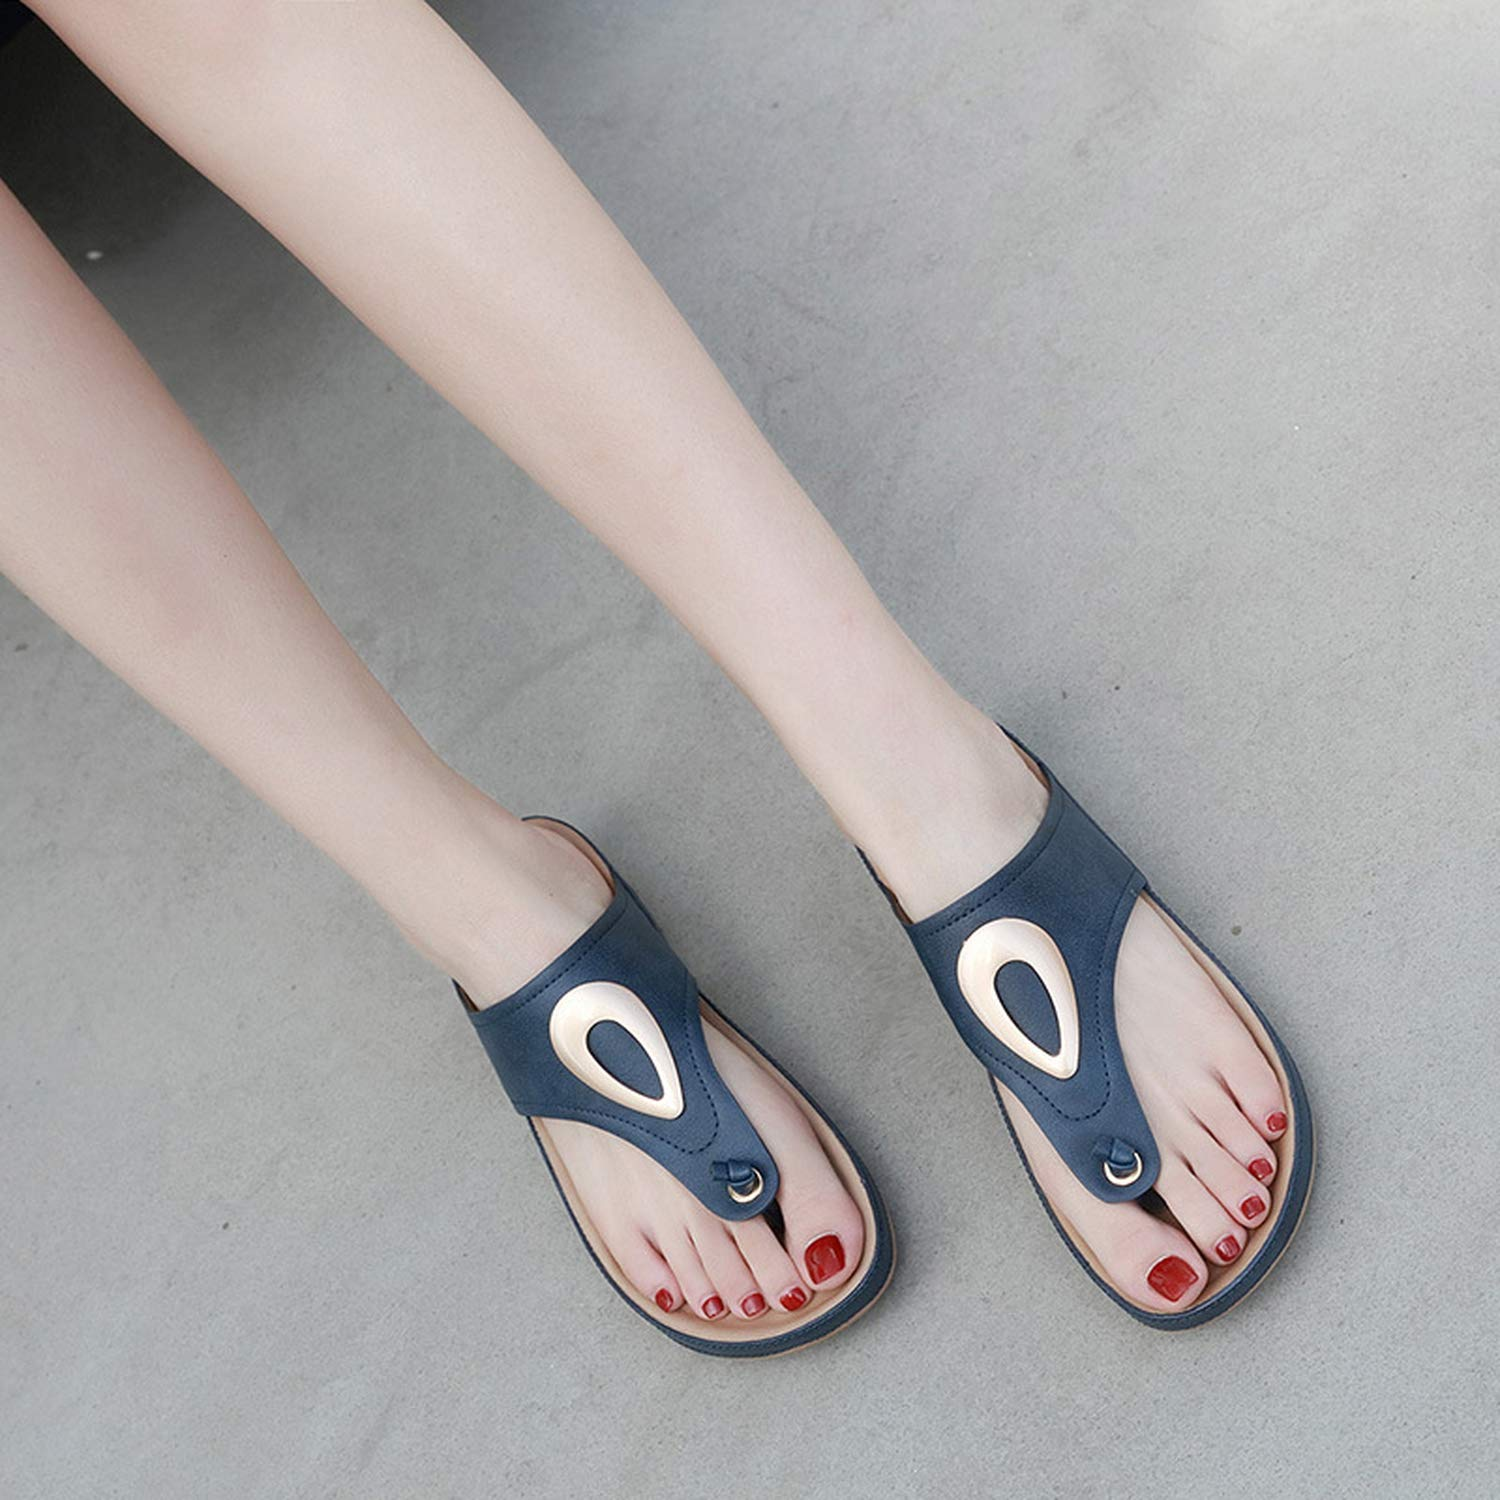 Mywine 2019 Summer Slippers Women Shoes Plus Size Women Slippers Thick Sole Beach Slippers Summer Ladies Shoes